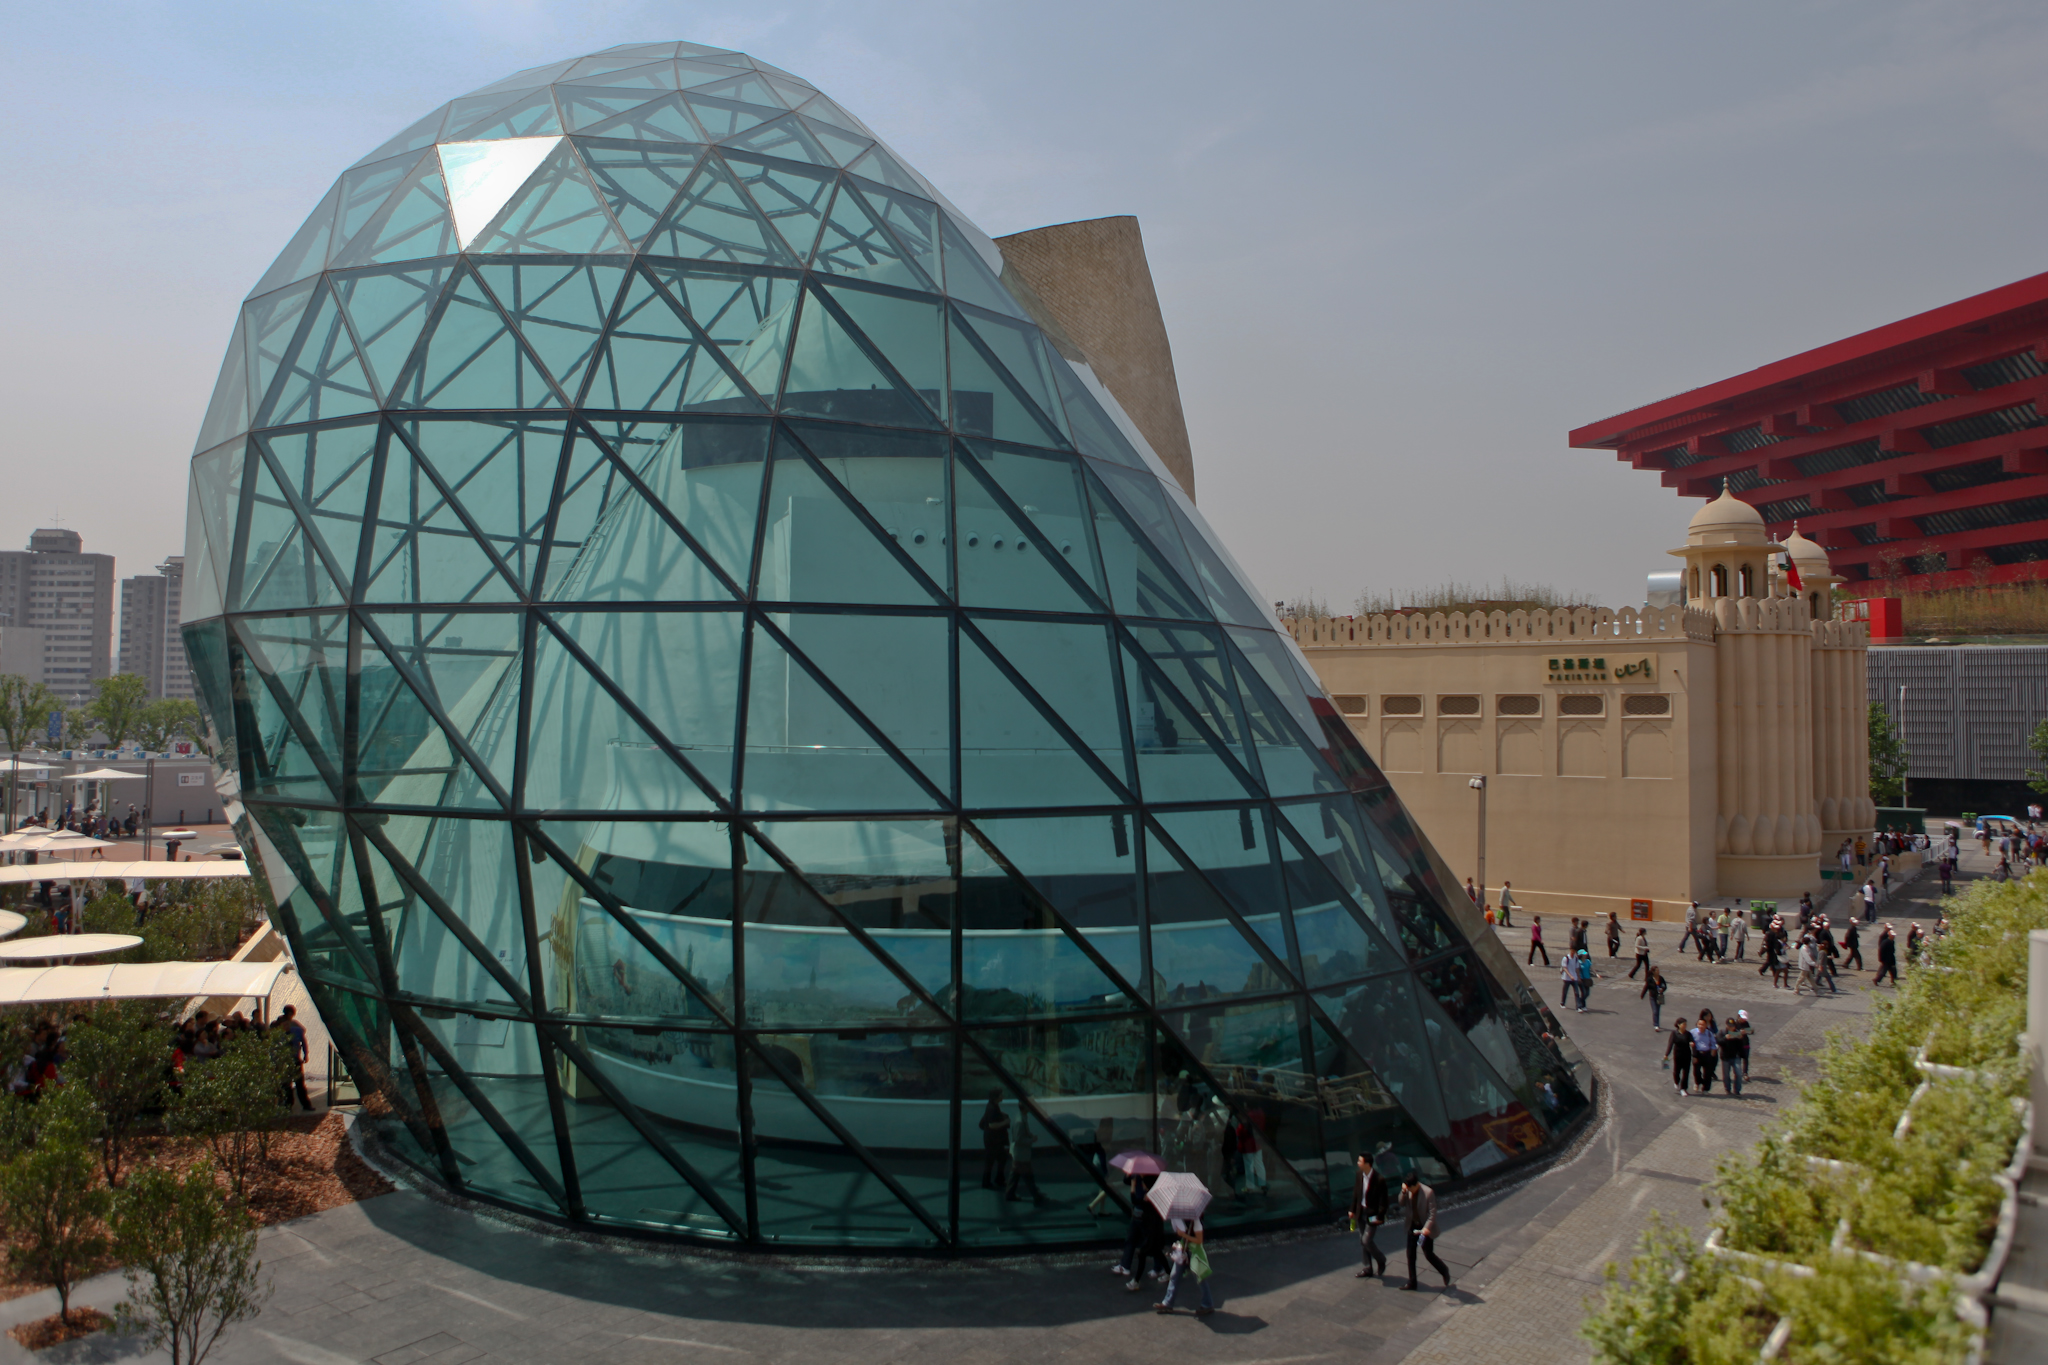 File:Israel\u0027s Pavillion at the 2010 World Expo in Shanghai.jpg ...